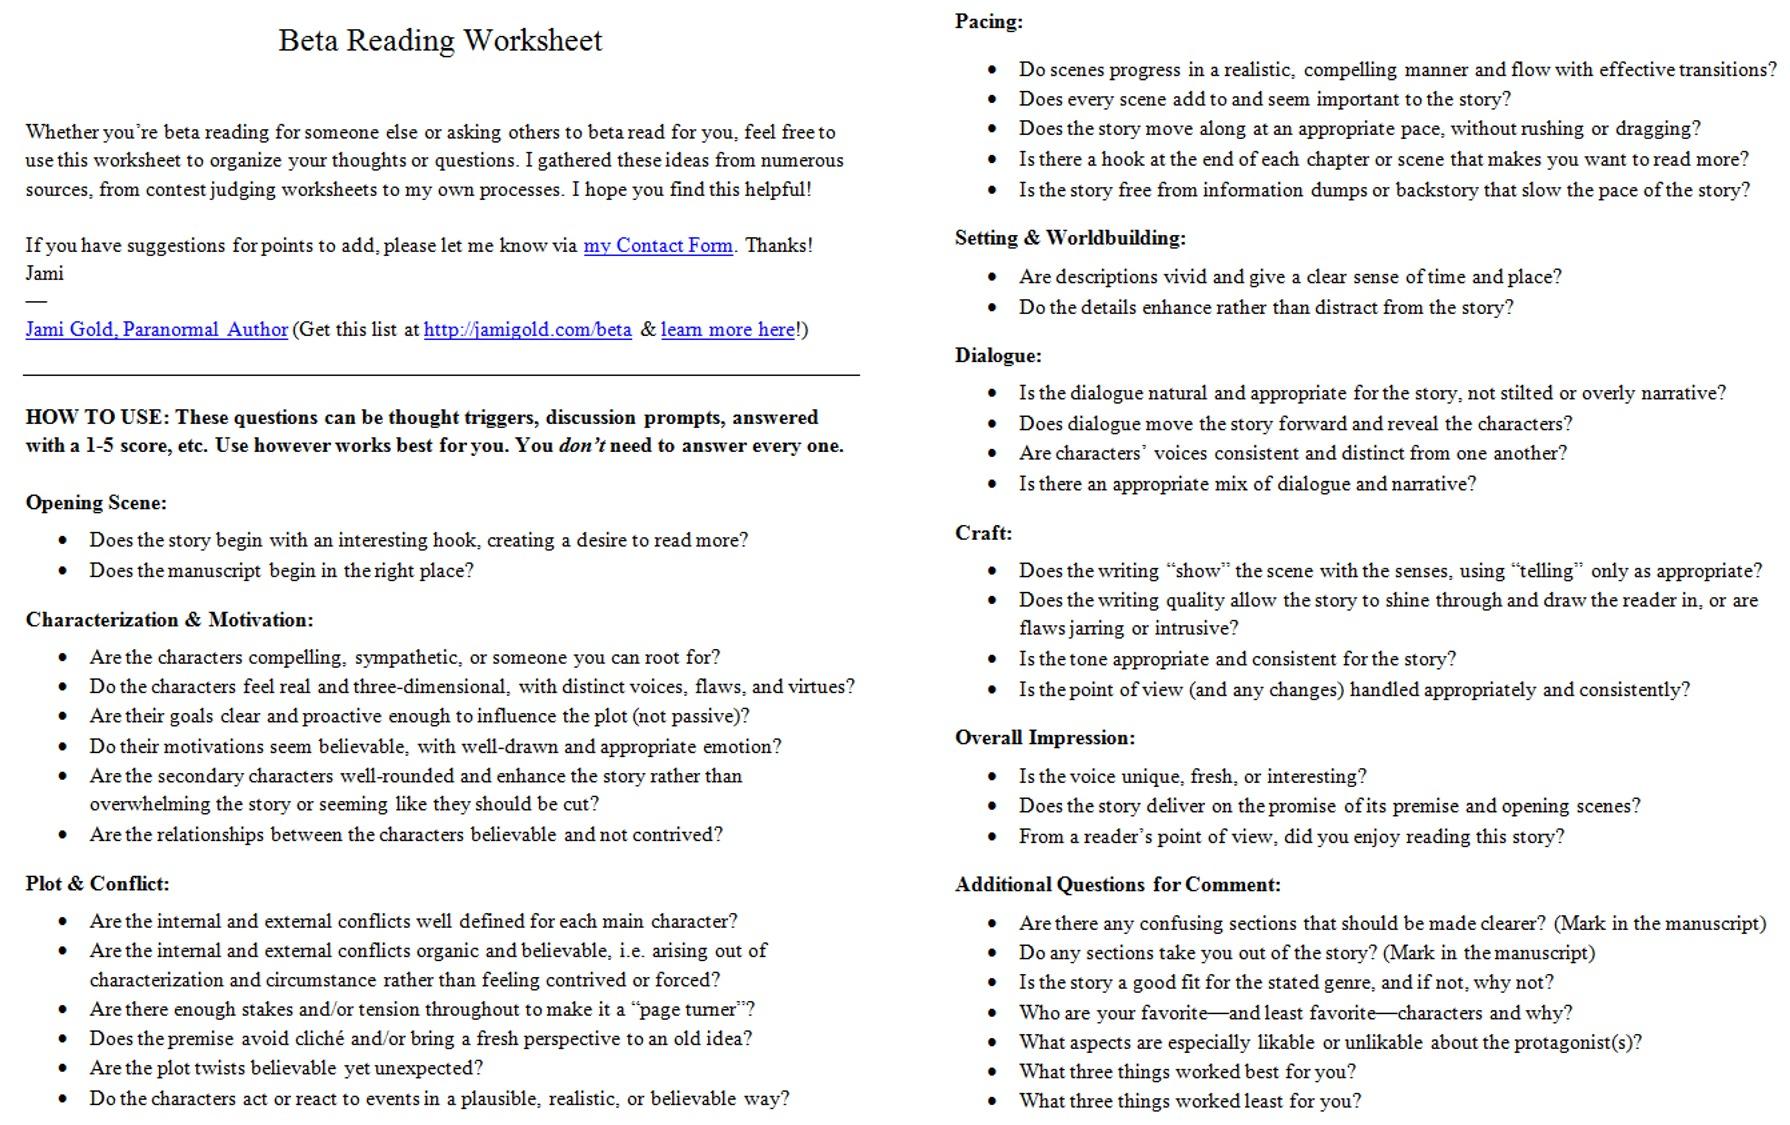 Proatmealus  Sweet Worksheets For Writers  Jami Gold Paranormal Author With Likable Screen Shot Of The Twopage Beta Reading Worksheet With Alluring Vocabulary Worksheets Esl Also Multiplication Speed Test Worksheets In Addition Main Idea Of A Paragraph Worksheets And Worksheets On Ancient Greece As Well As Kindergarten Number Worksheets  Additionally Class  Maths Worksheet From Jamigoldcom With Proatmealus  Likable Worksheets For Writers  Jami Gold Paranormal Author With Alluring Screen Shot Of The Twopage Beta Reading Worksheet And Sweet Vocabulary Worksheets Esl Also Multiplication Speed Test Worksheets In Addition Main Idea Of A Paragraph Worksheets From Jamigoldcom